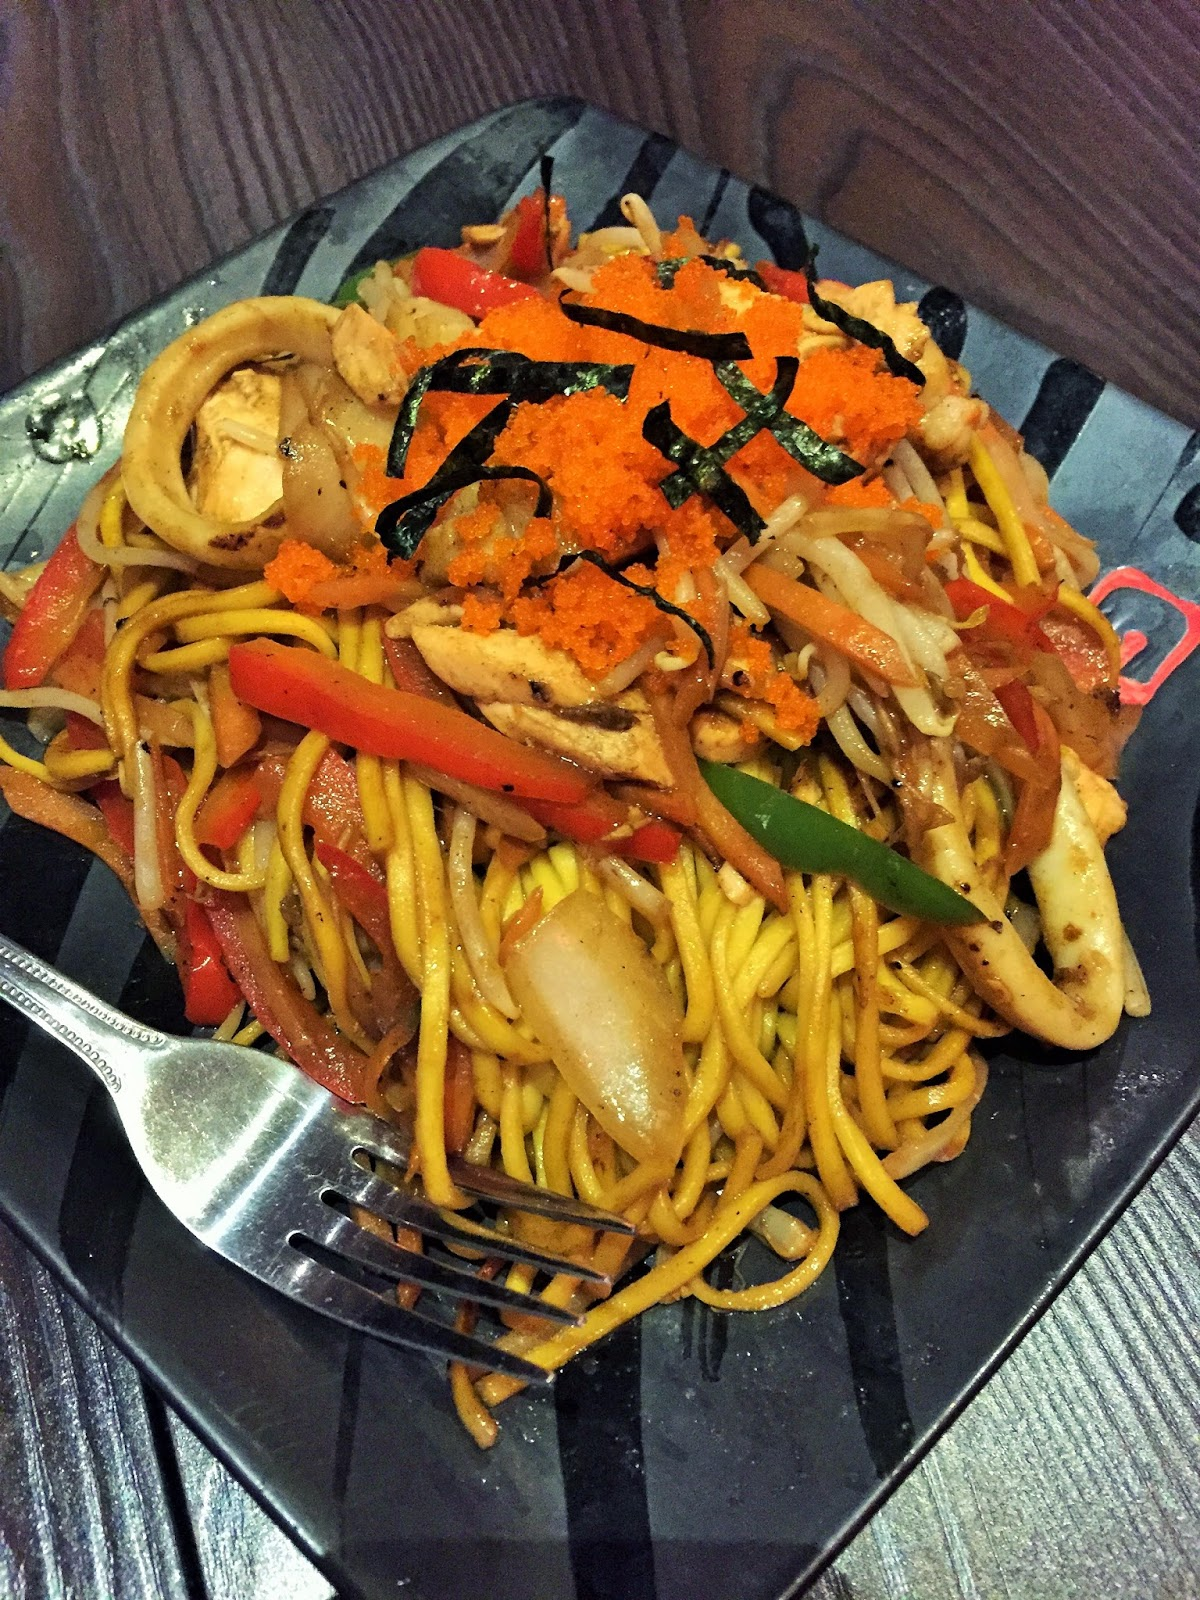 Sumo San fried noodles at Sumo San, Sheffield